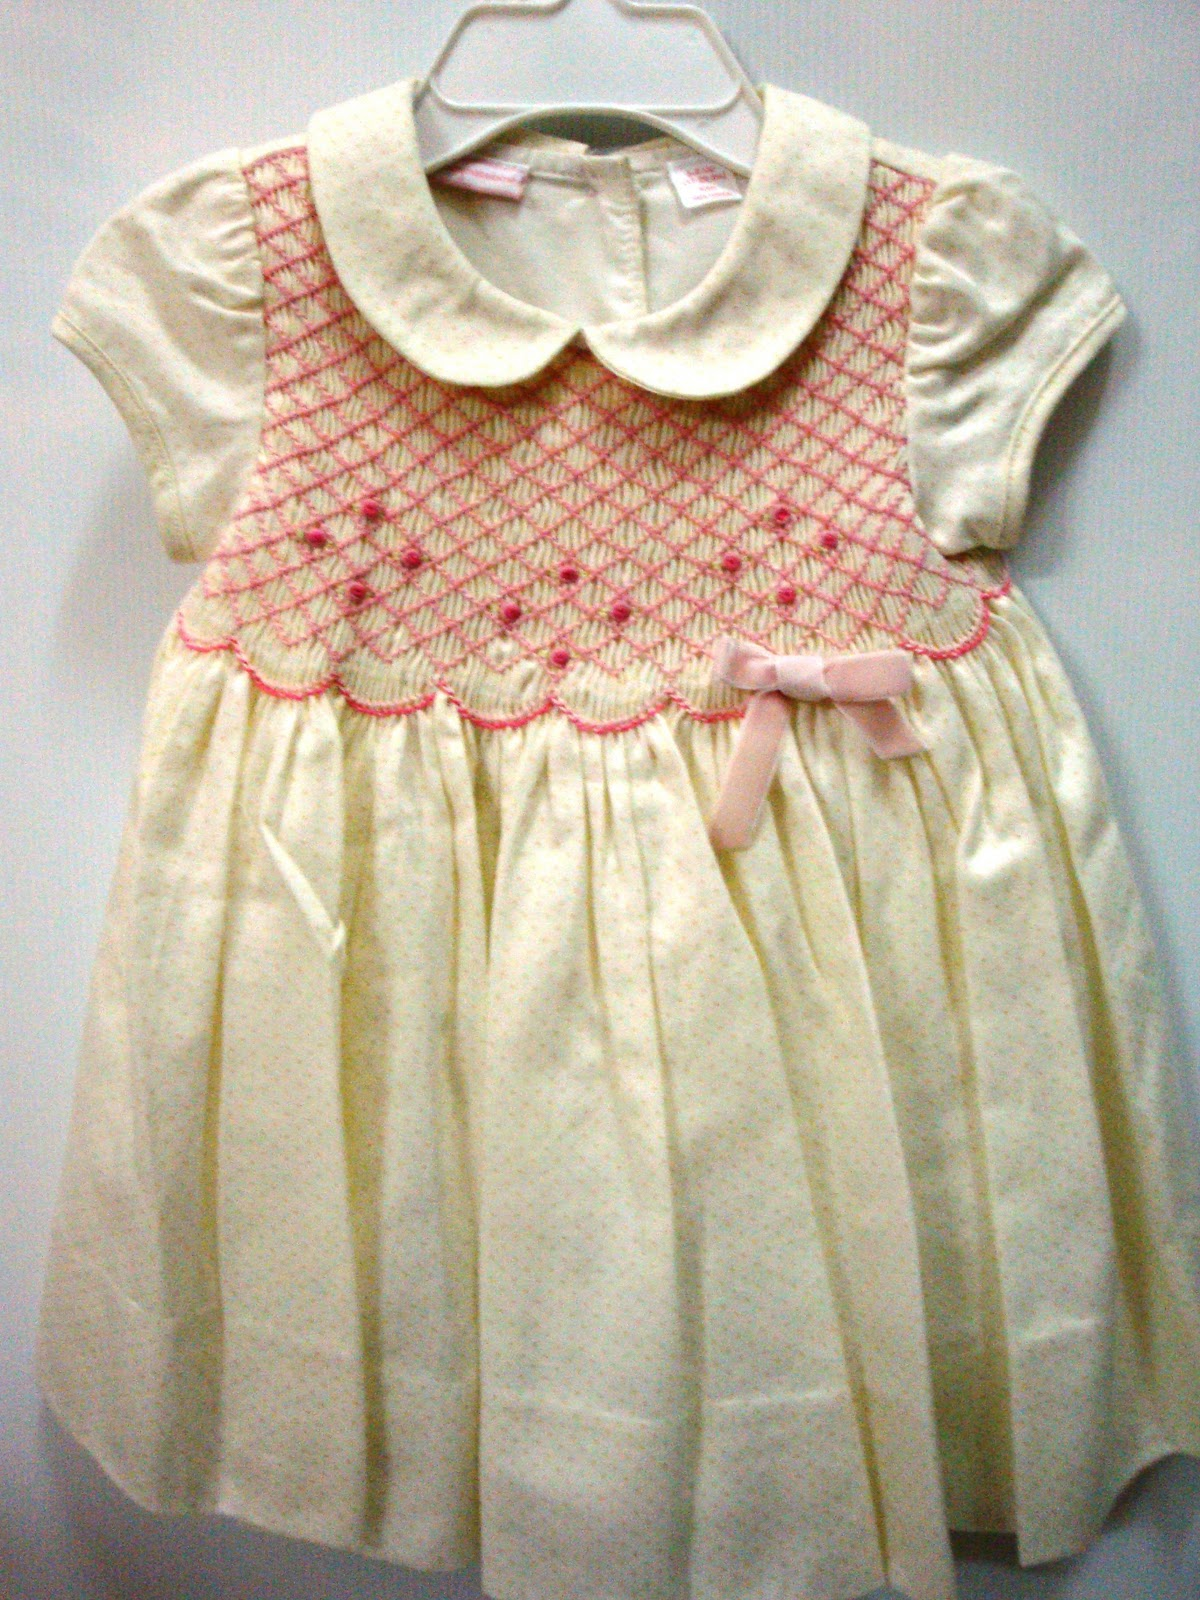 Mommy s lil sweetheart quality hand smocking